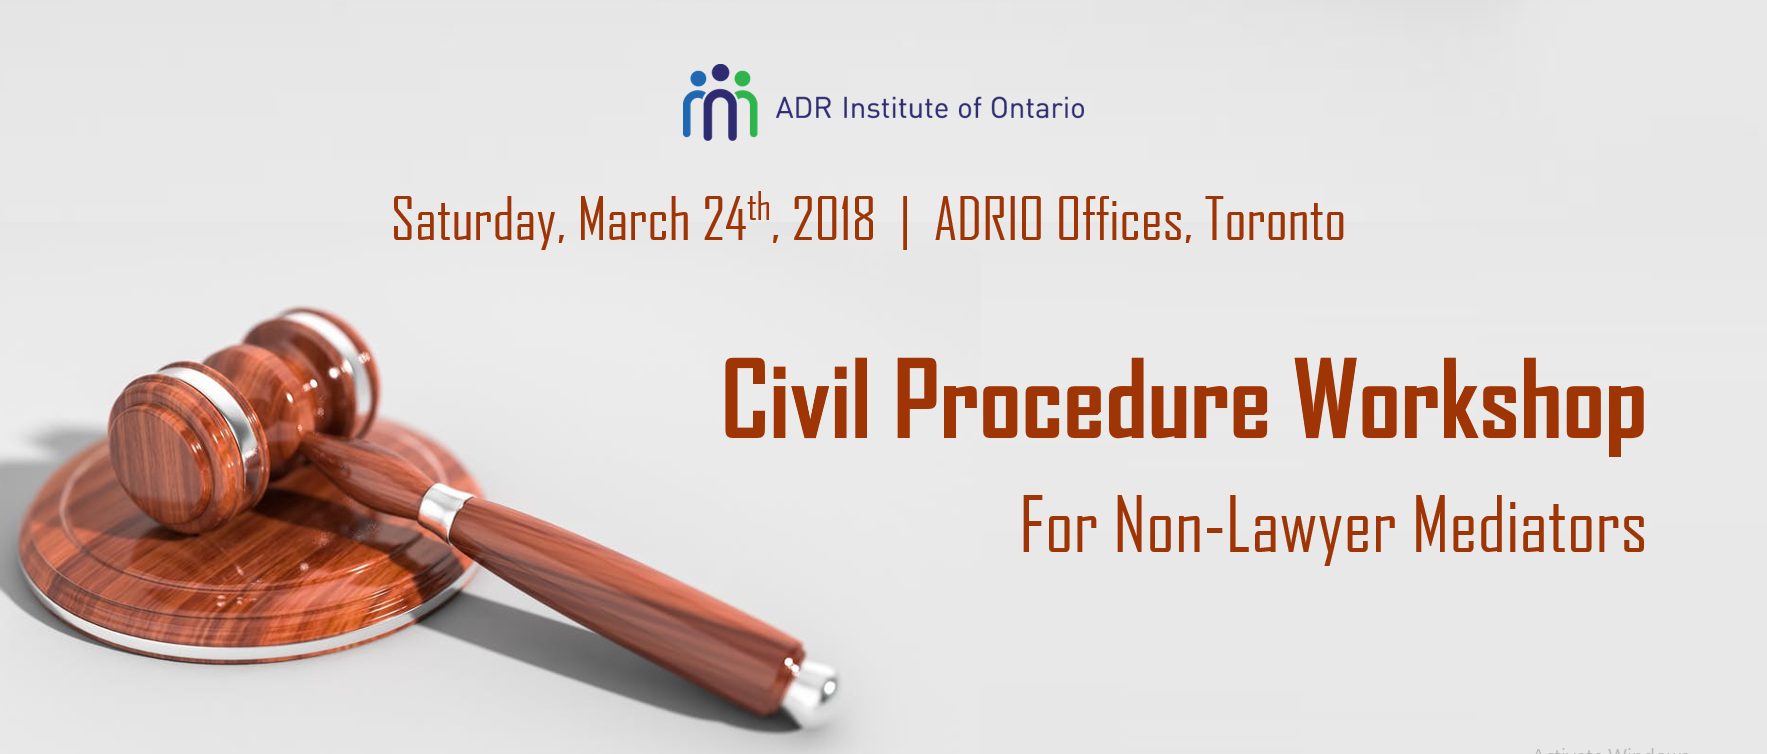 ADRIO - Civil Procedures Workshop for NON-LAWYER Mediators